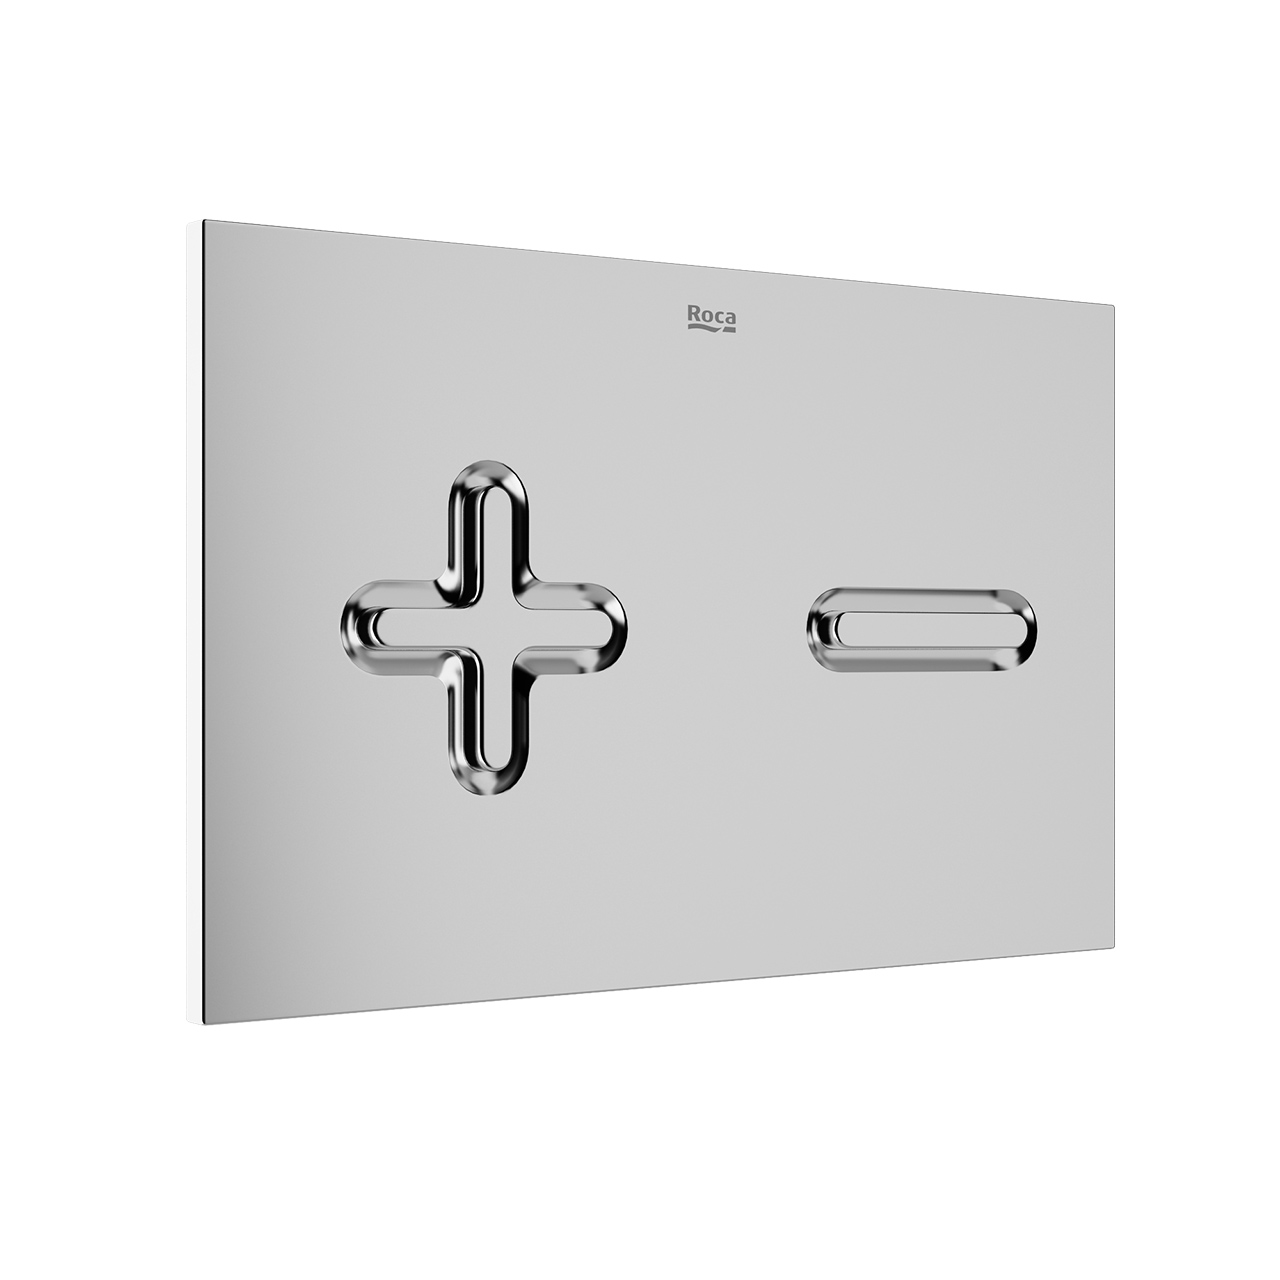 PL6 Dual Flush Plate by Roca